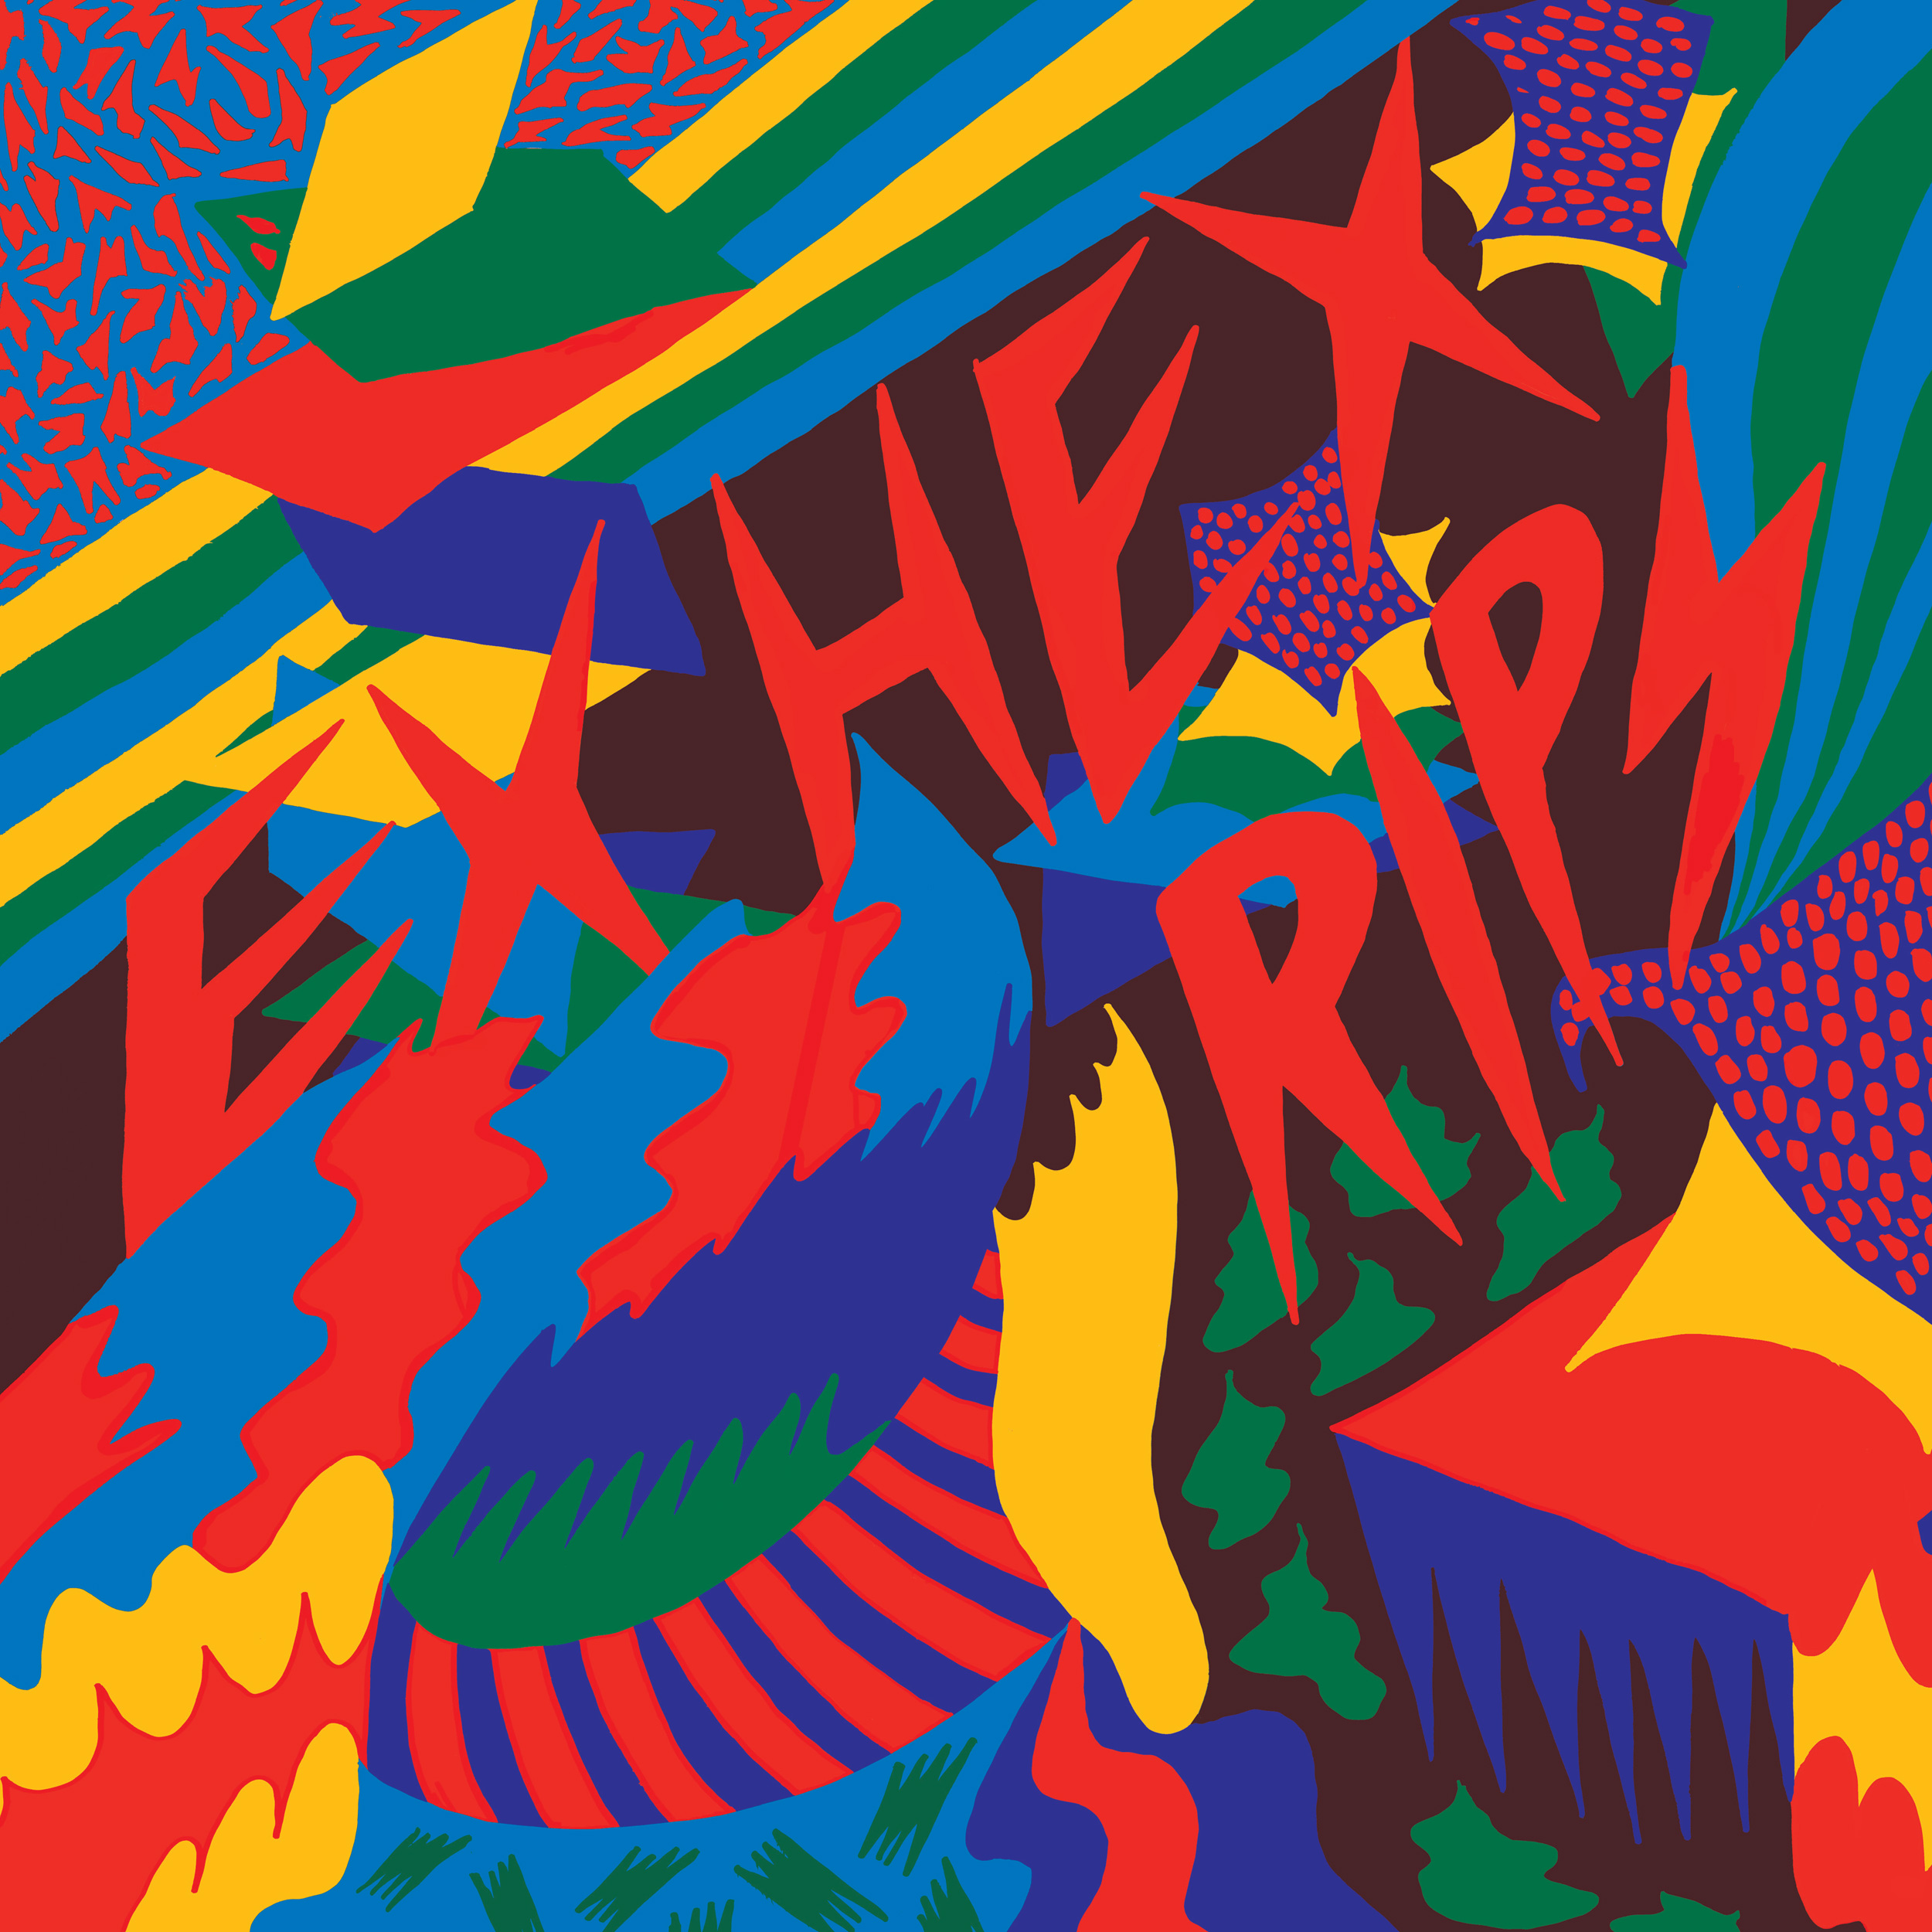 """""""Rips by Ex Hex is my new favorite album,"""" Durant says. """"It makes me want to dance!"""" $14, barnesandnoble.com"""